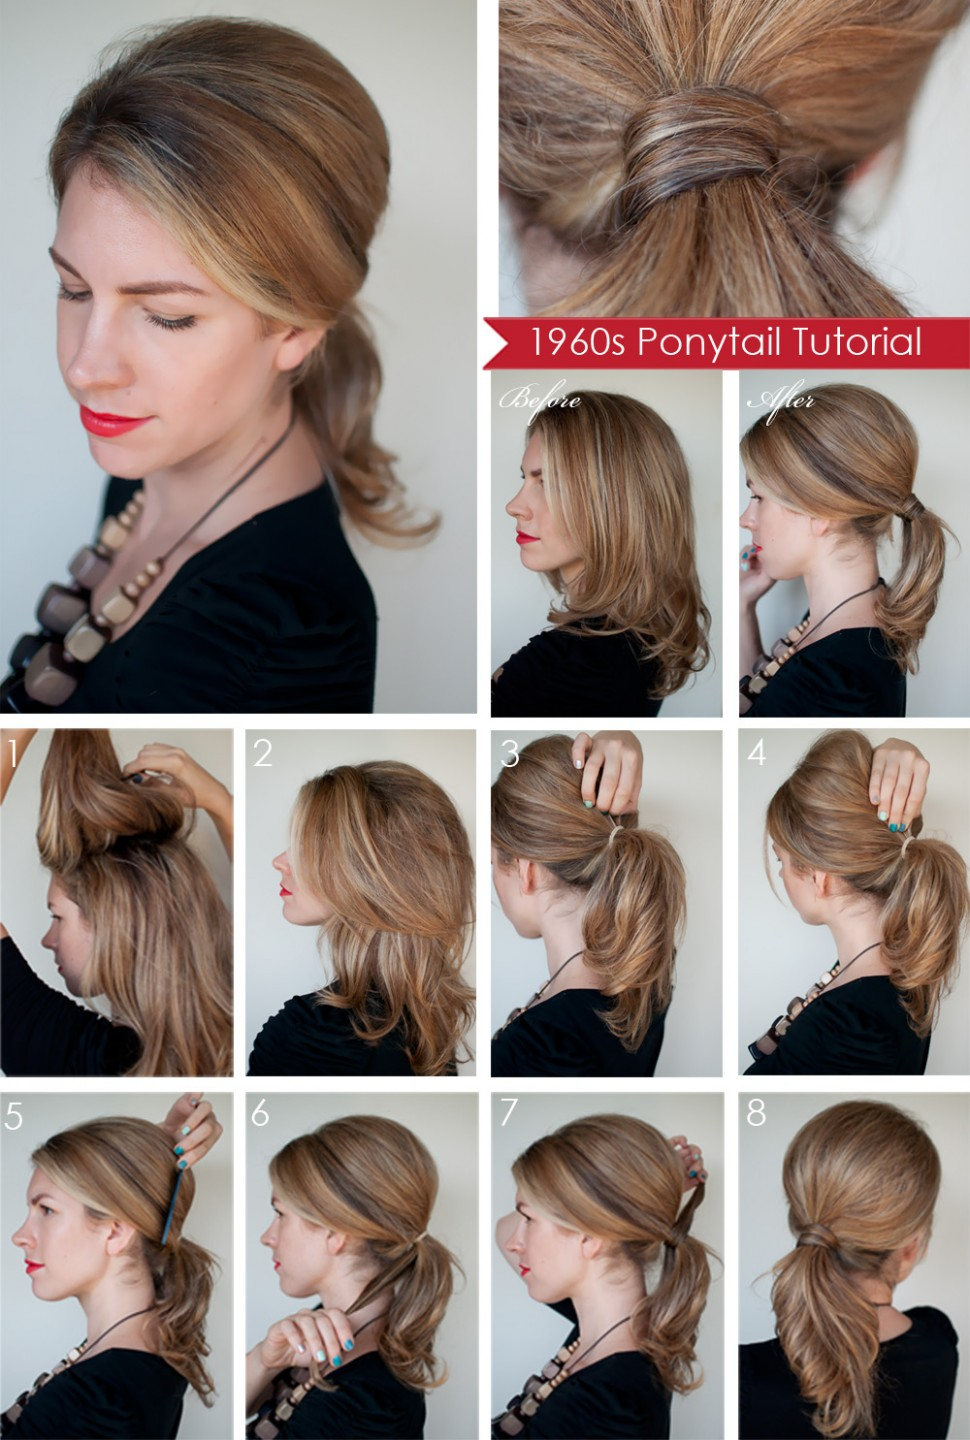 Hairstyle how to: Create a 10s style ponytail - Hair Romance